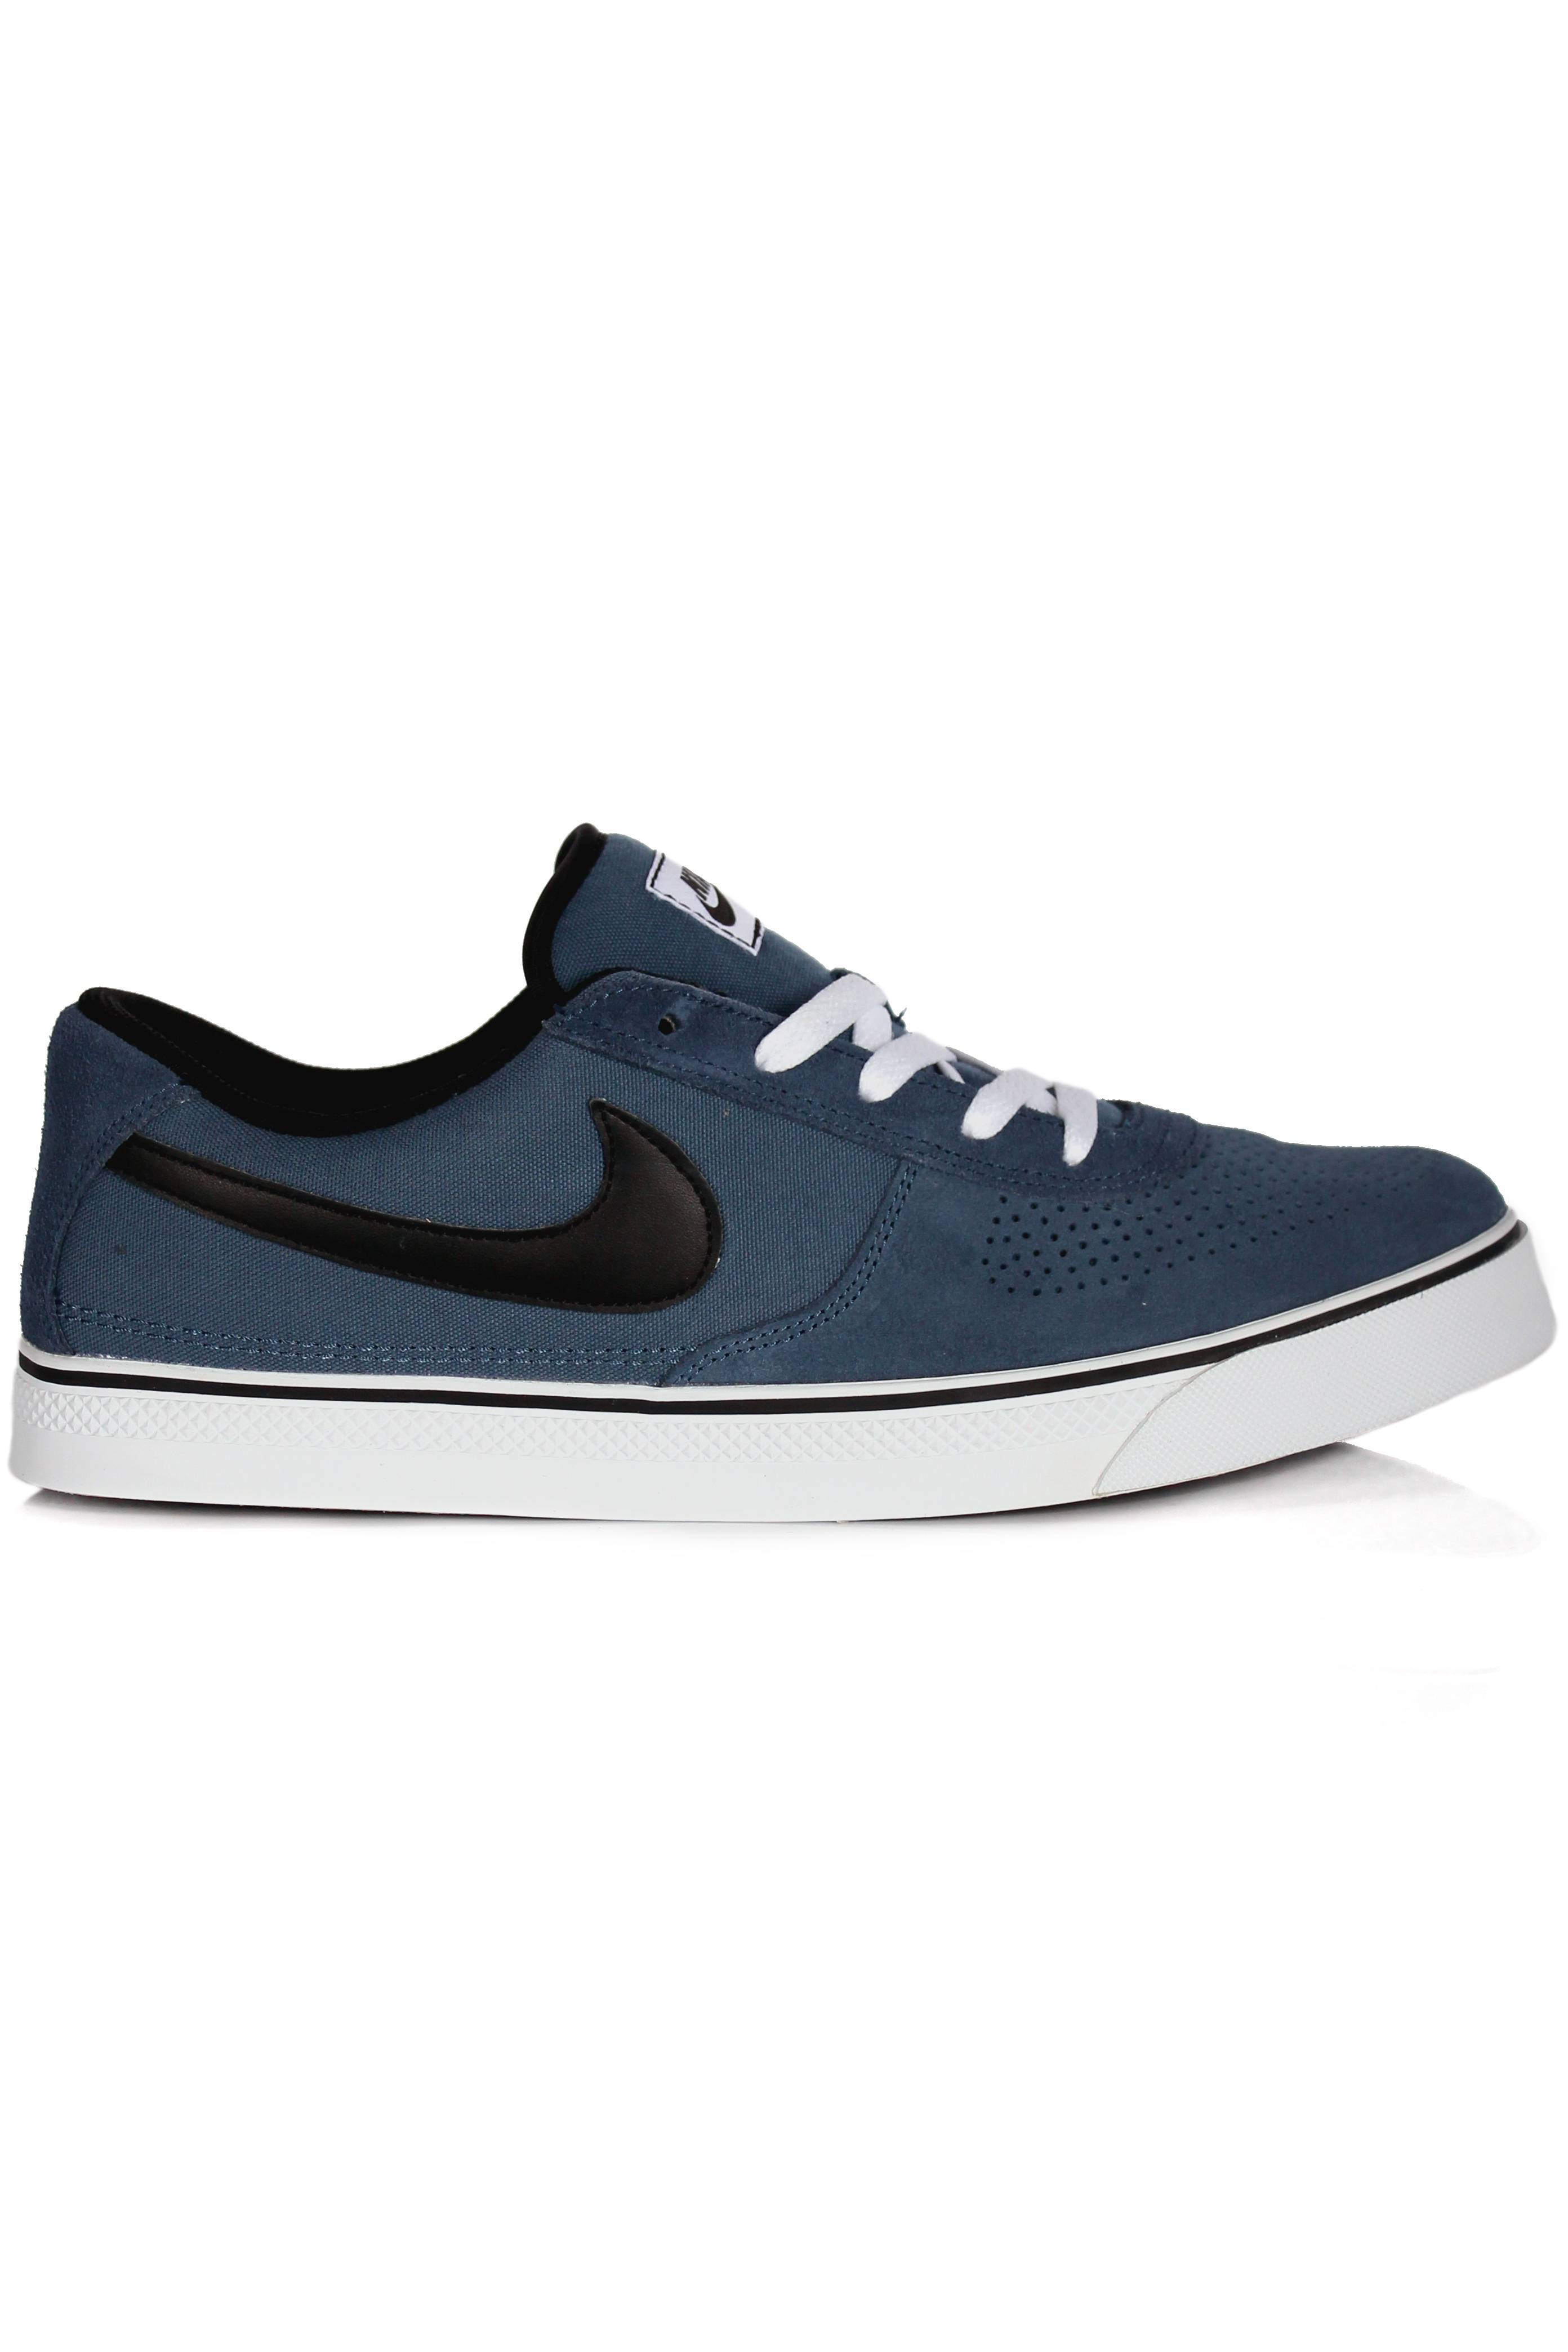 Buty Nike Mavrk Low 2 (New Slate/Black/White)